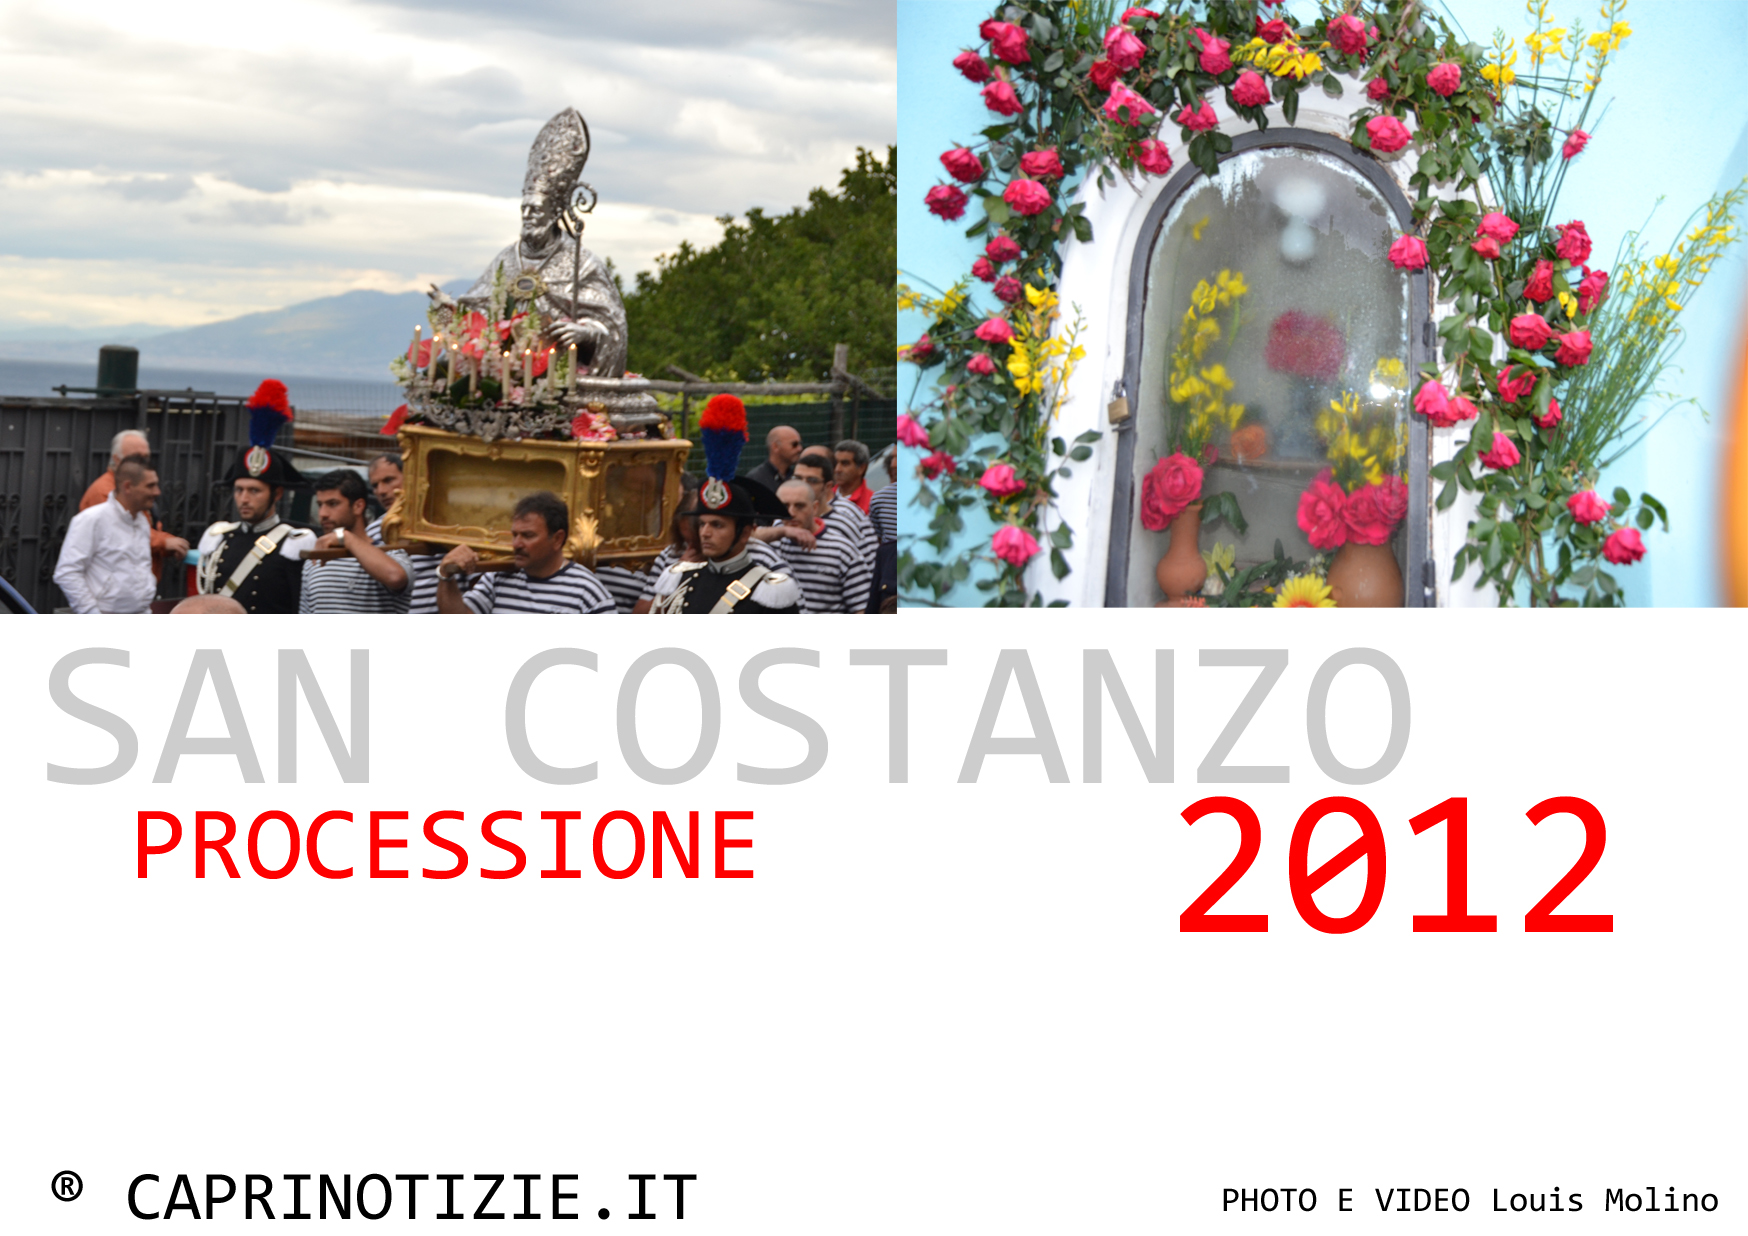 La processione di San Costanzo 2012, video e foto